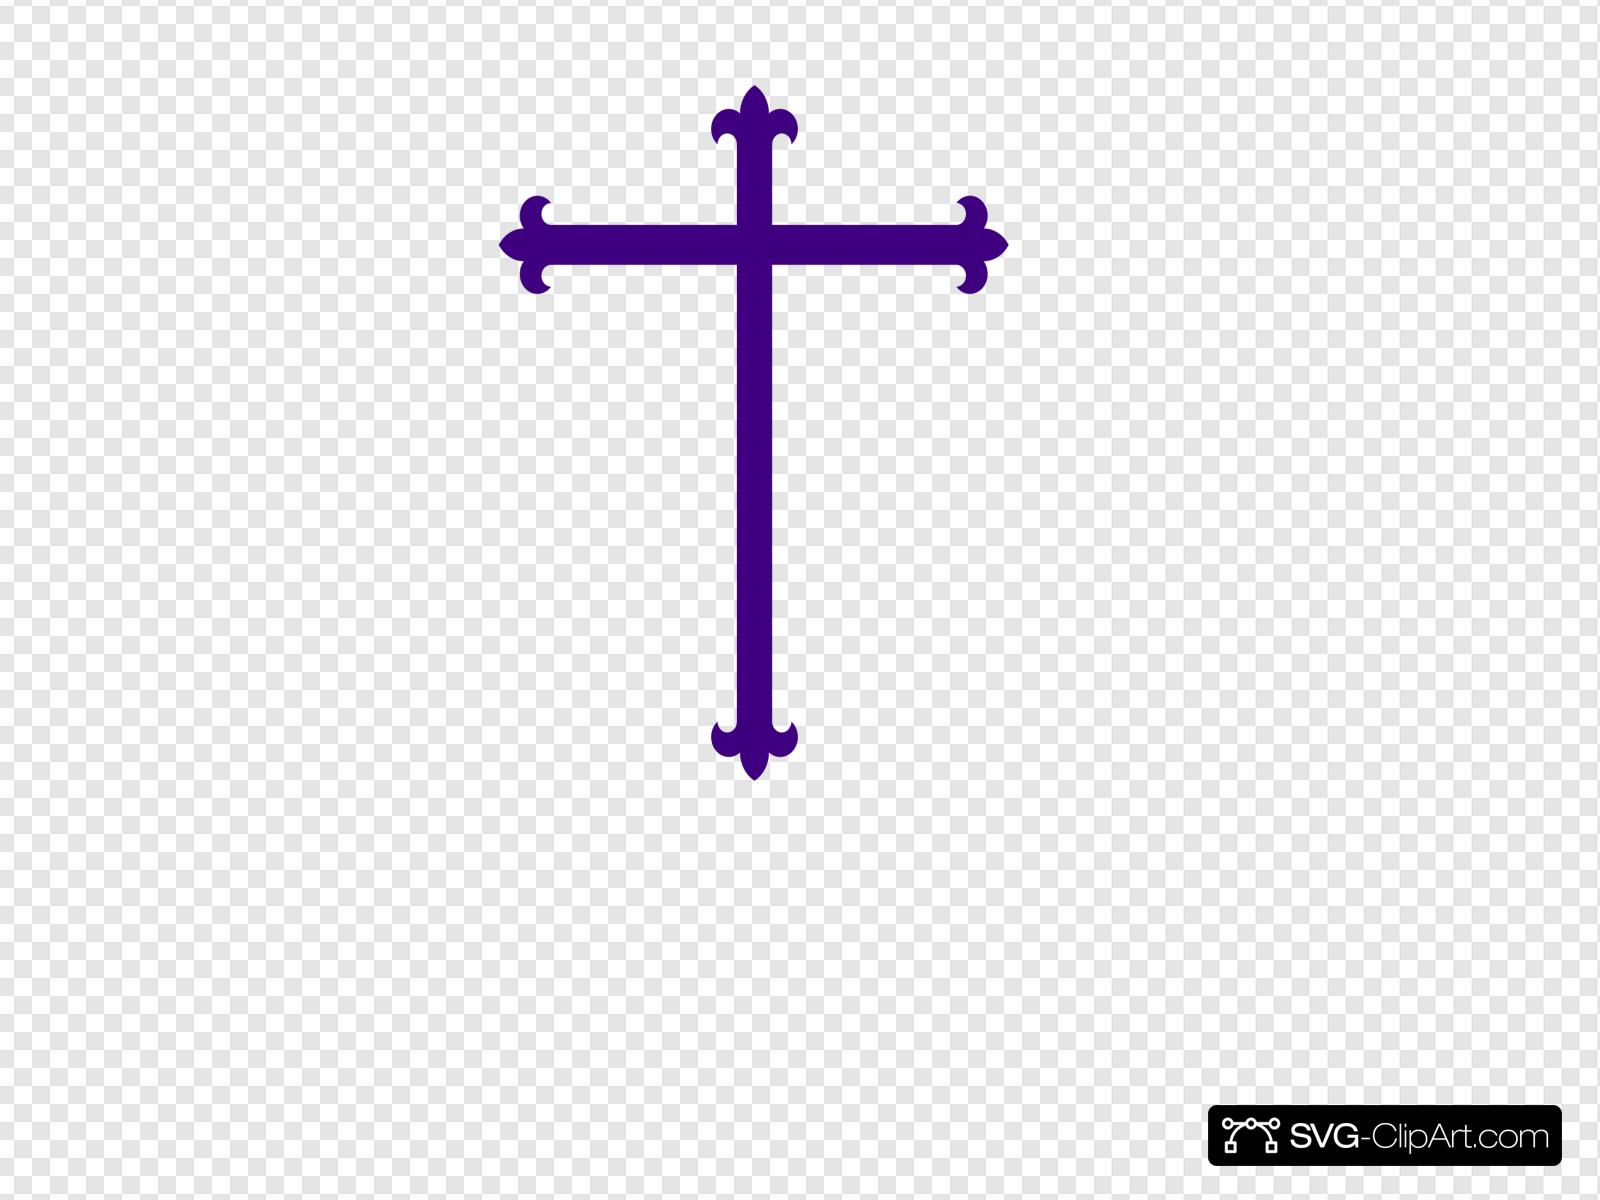 Purple Cross Clip art, Icon and SVG.